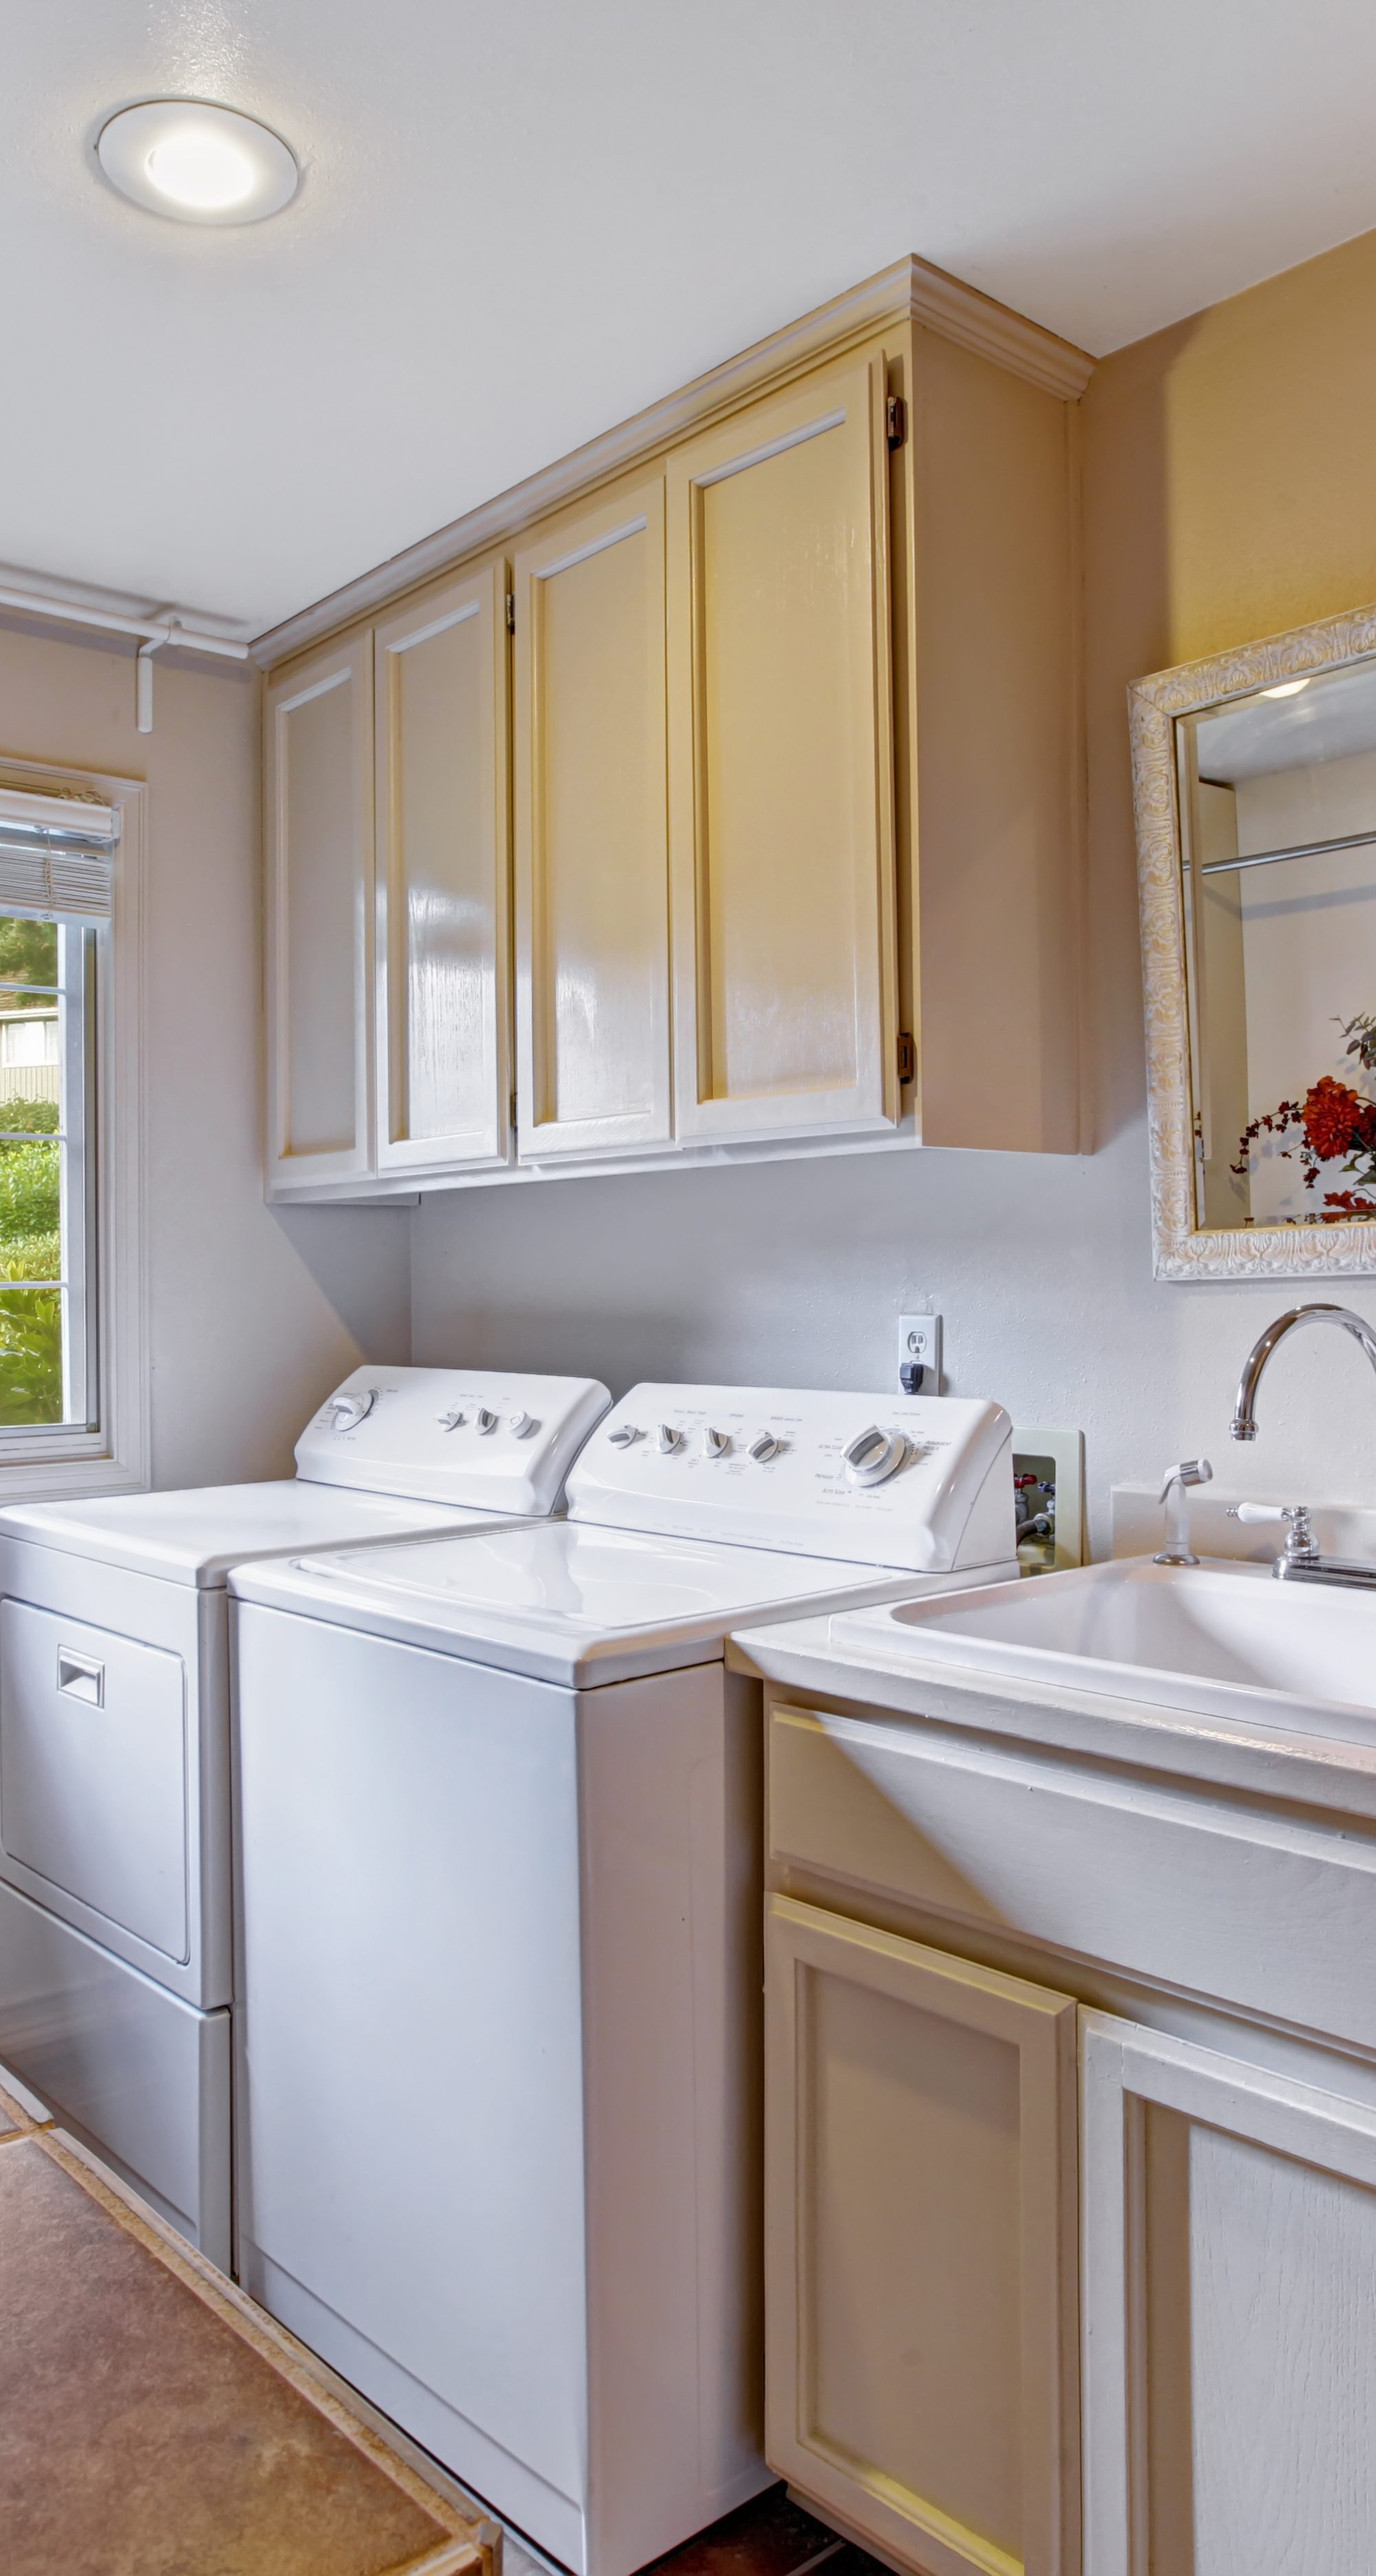 Admirable Laundry Room With Standard Appliances Jm Kitchen And Bath Best Image Libraries Thycampuscom